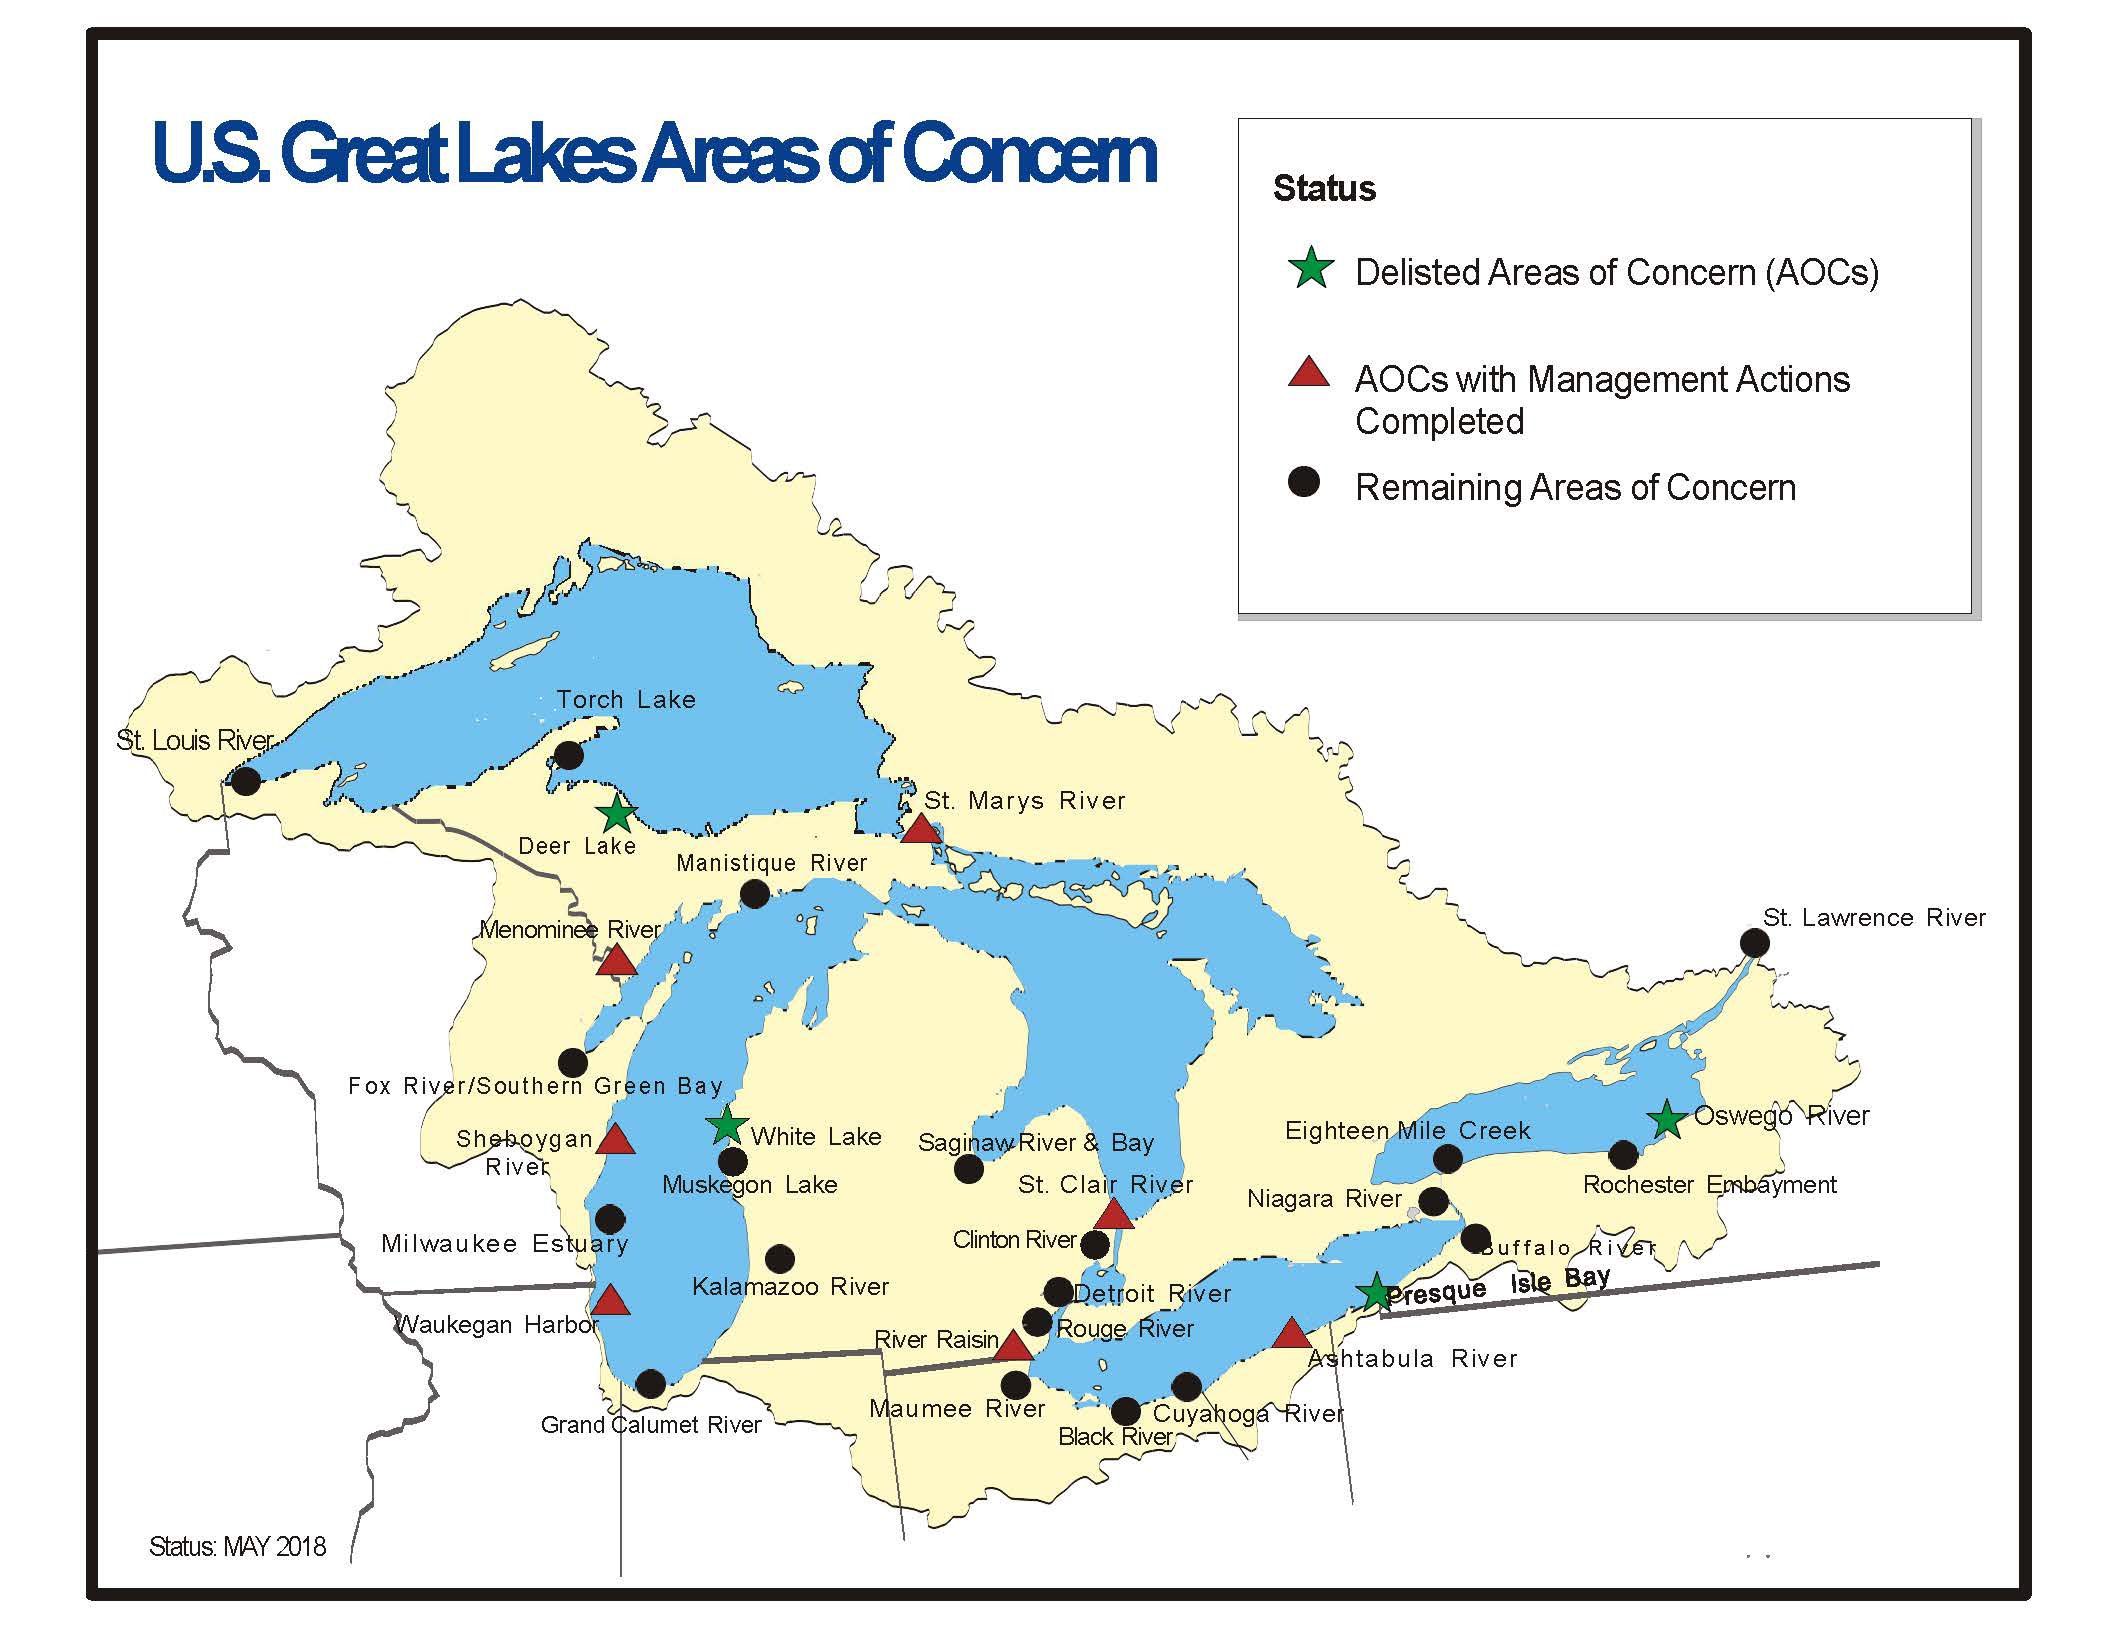 U.S. Great Lakes Area of Concern Map (May 2018)